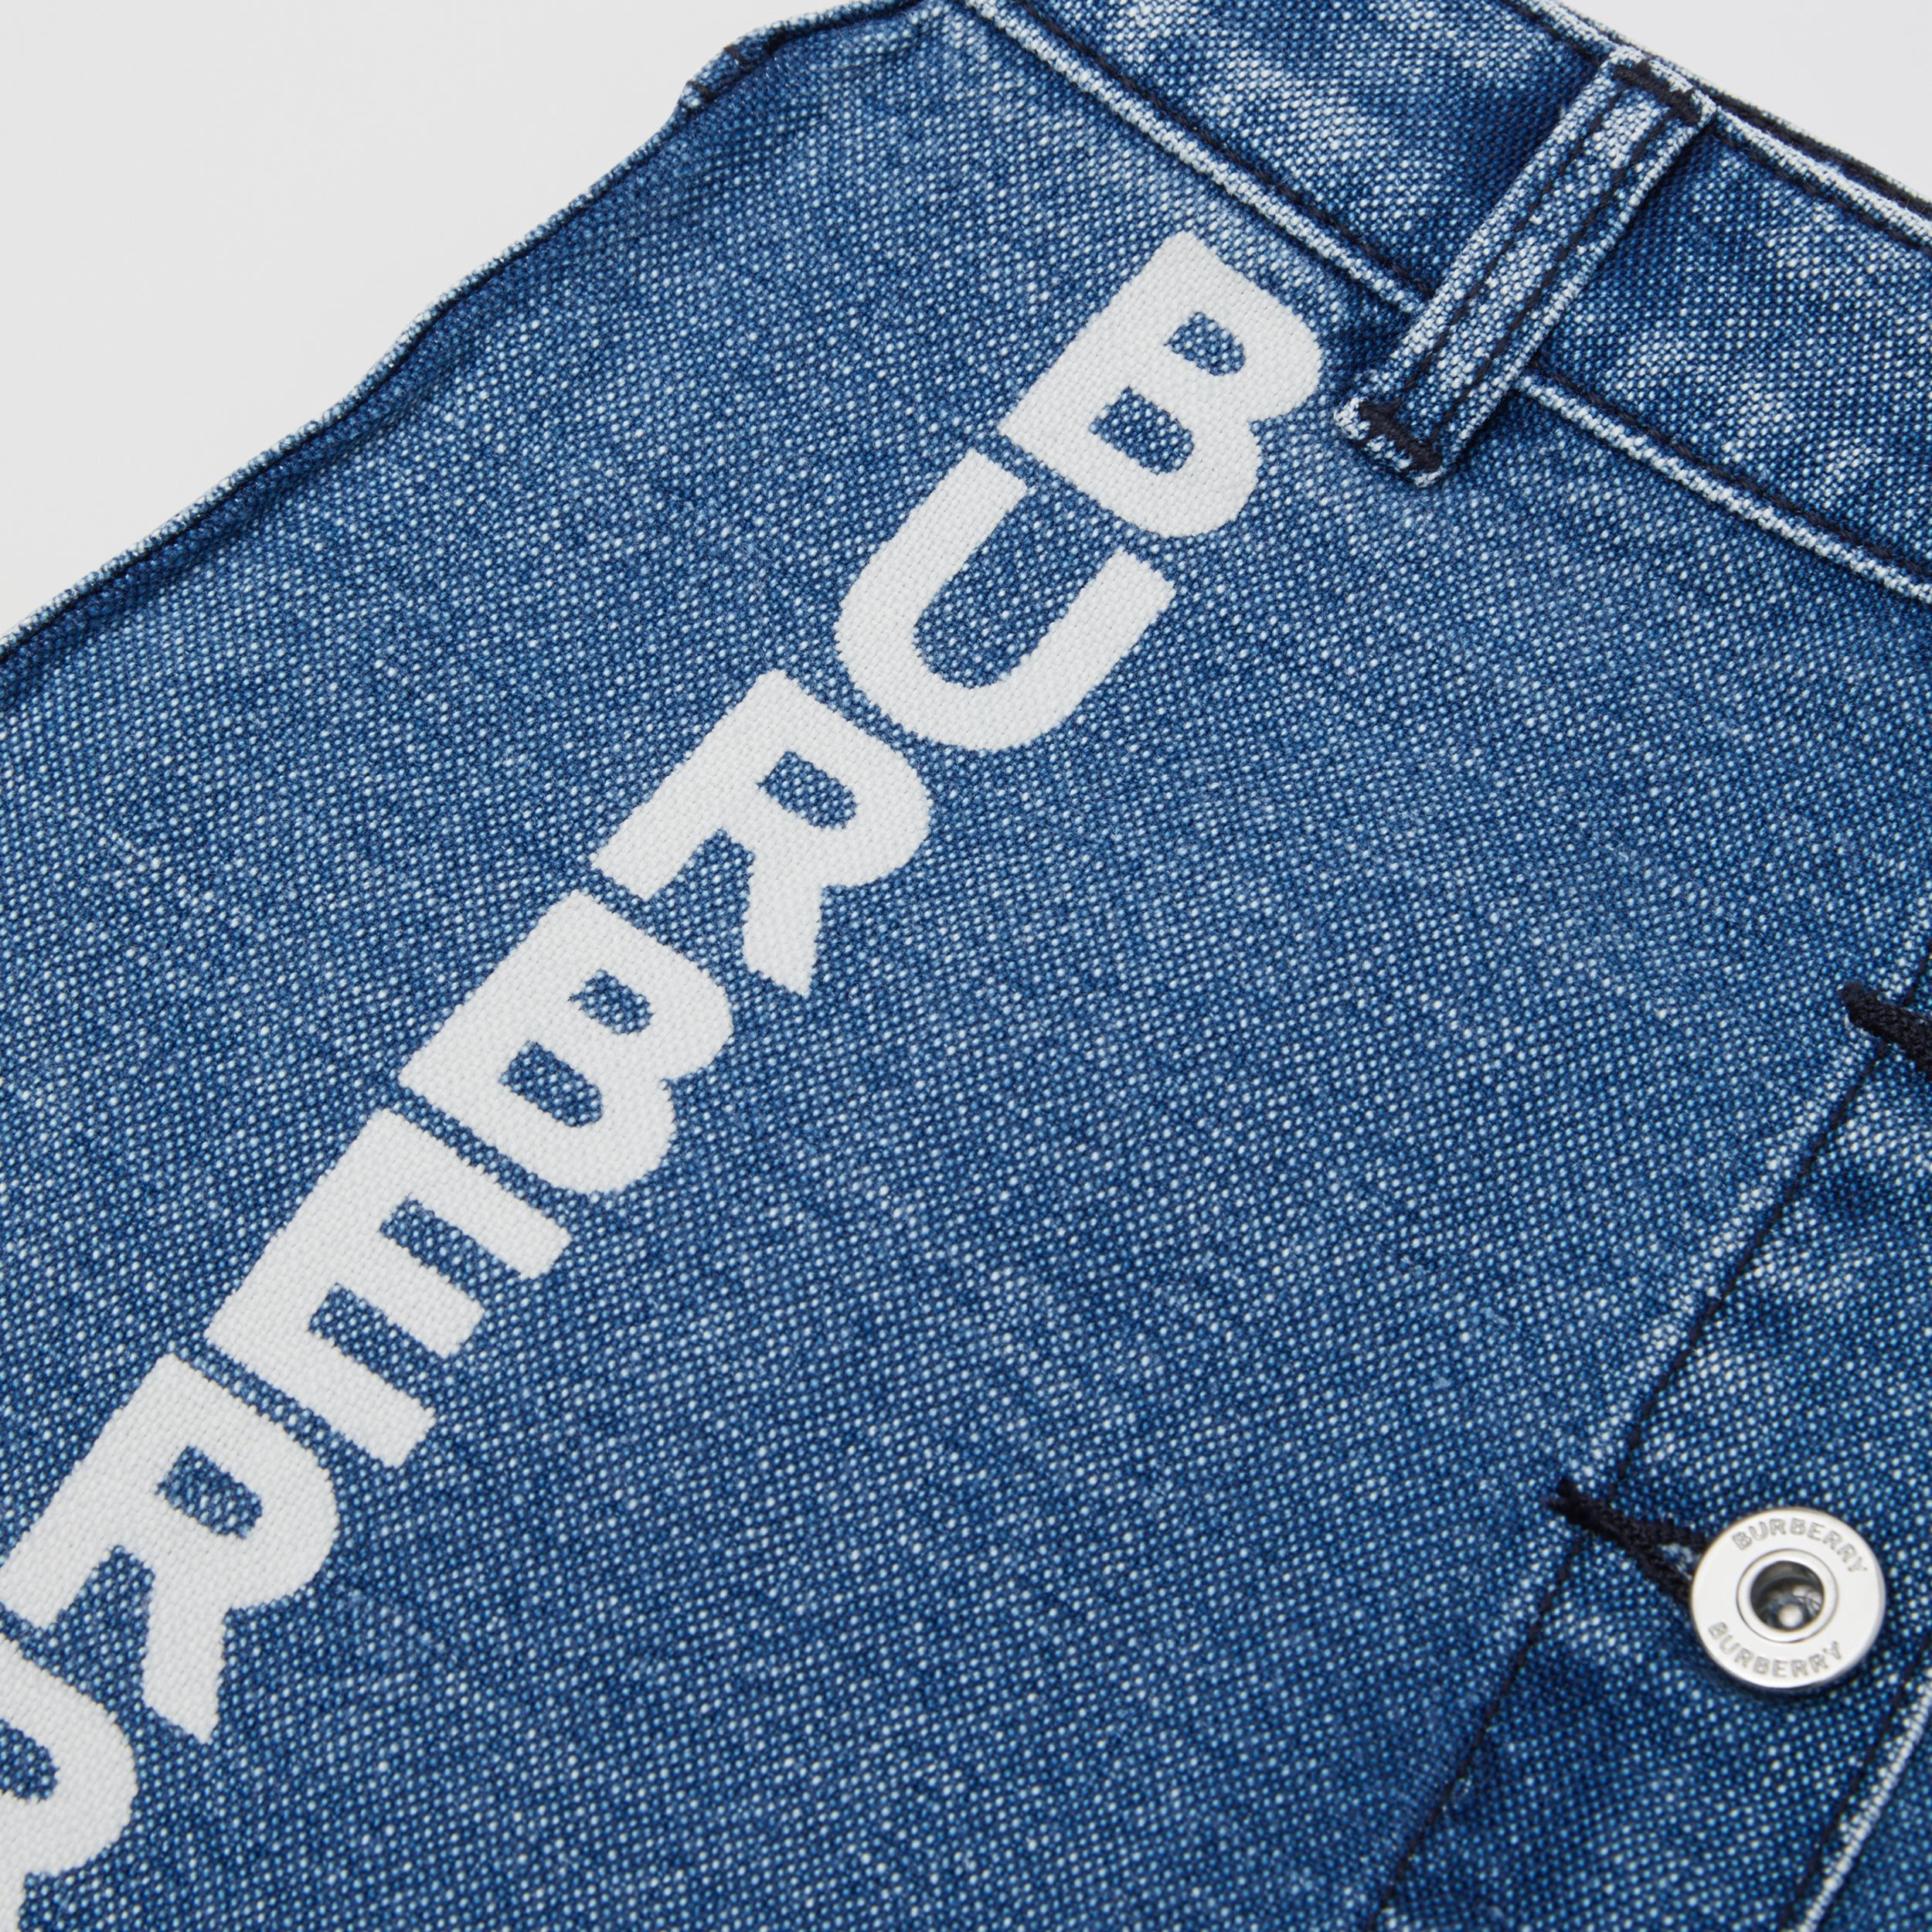 Logo Print Japanese Denim Skirt in Indigo - Girl | Burberry Australia - 2